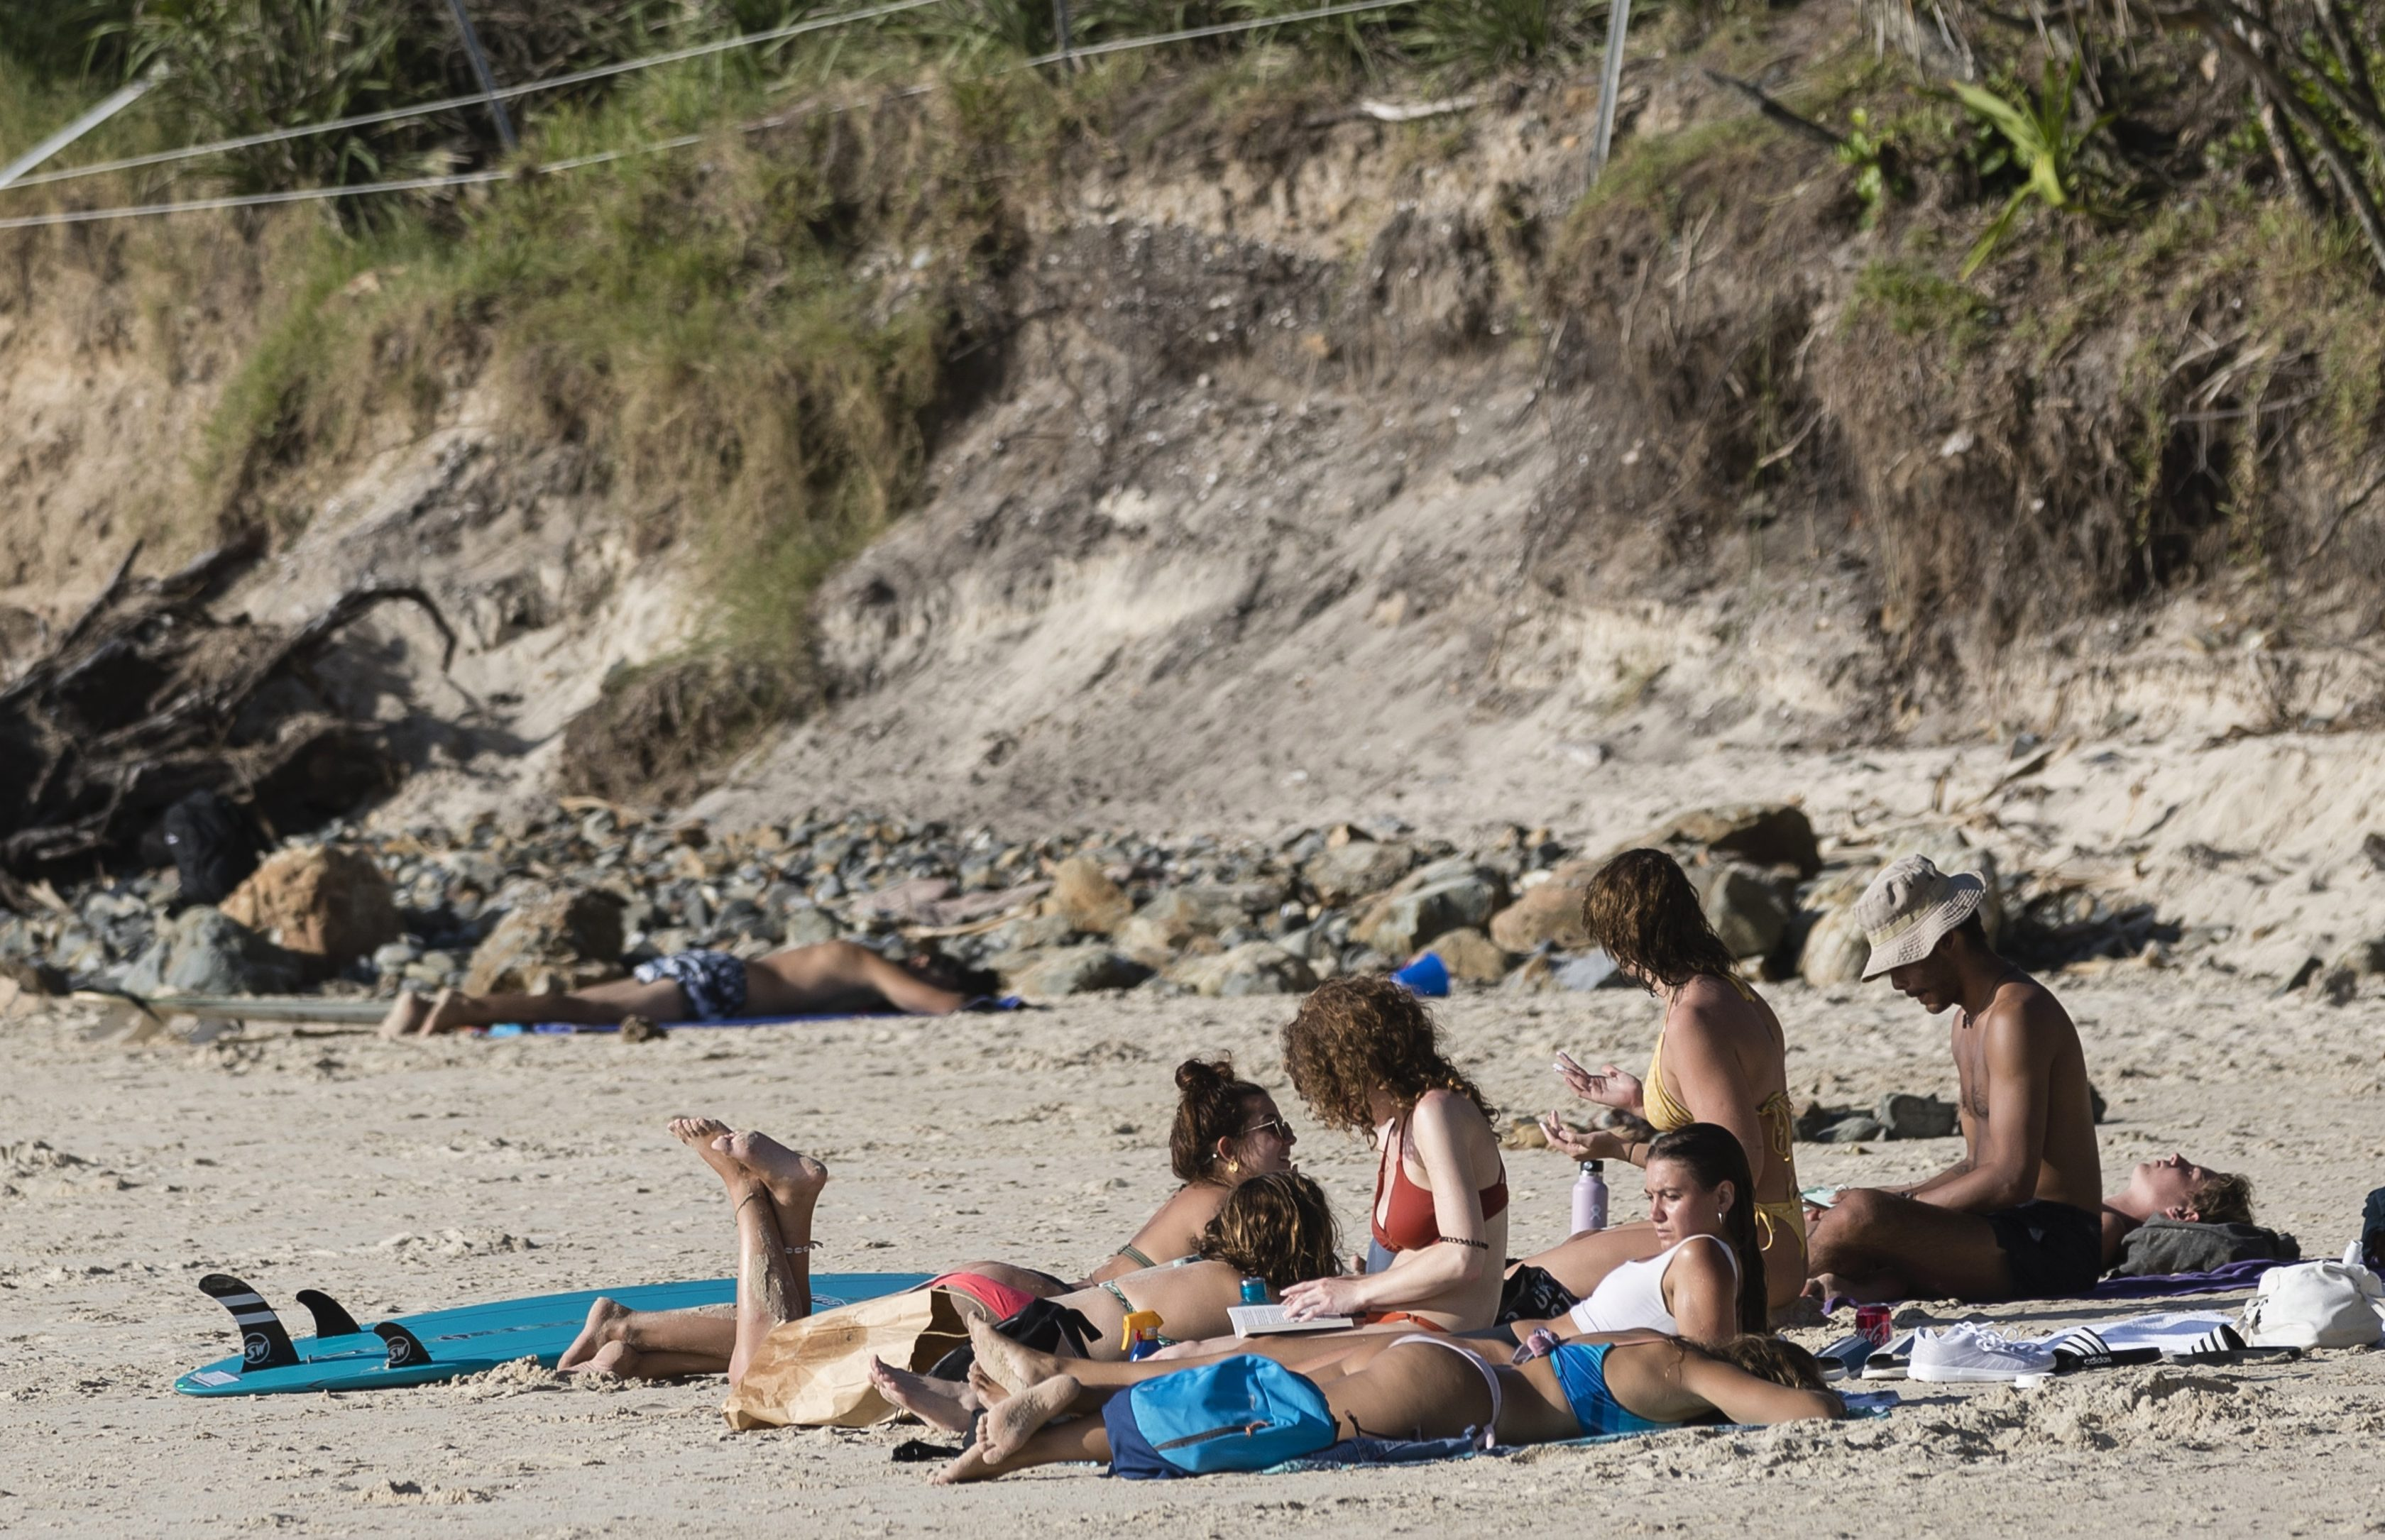 People gather at the beach known as The Pass before the lockdown